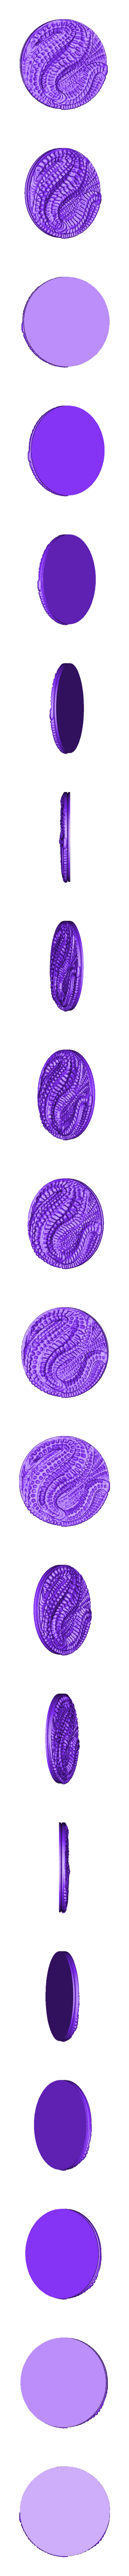 """Alien_Hive_-_2_inch_-_A.stl Download free STL file 1"""" & 2' Round Bases - The Ignis Quadrant • 3D printing template, ec3d"""